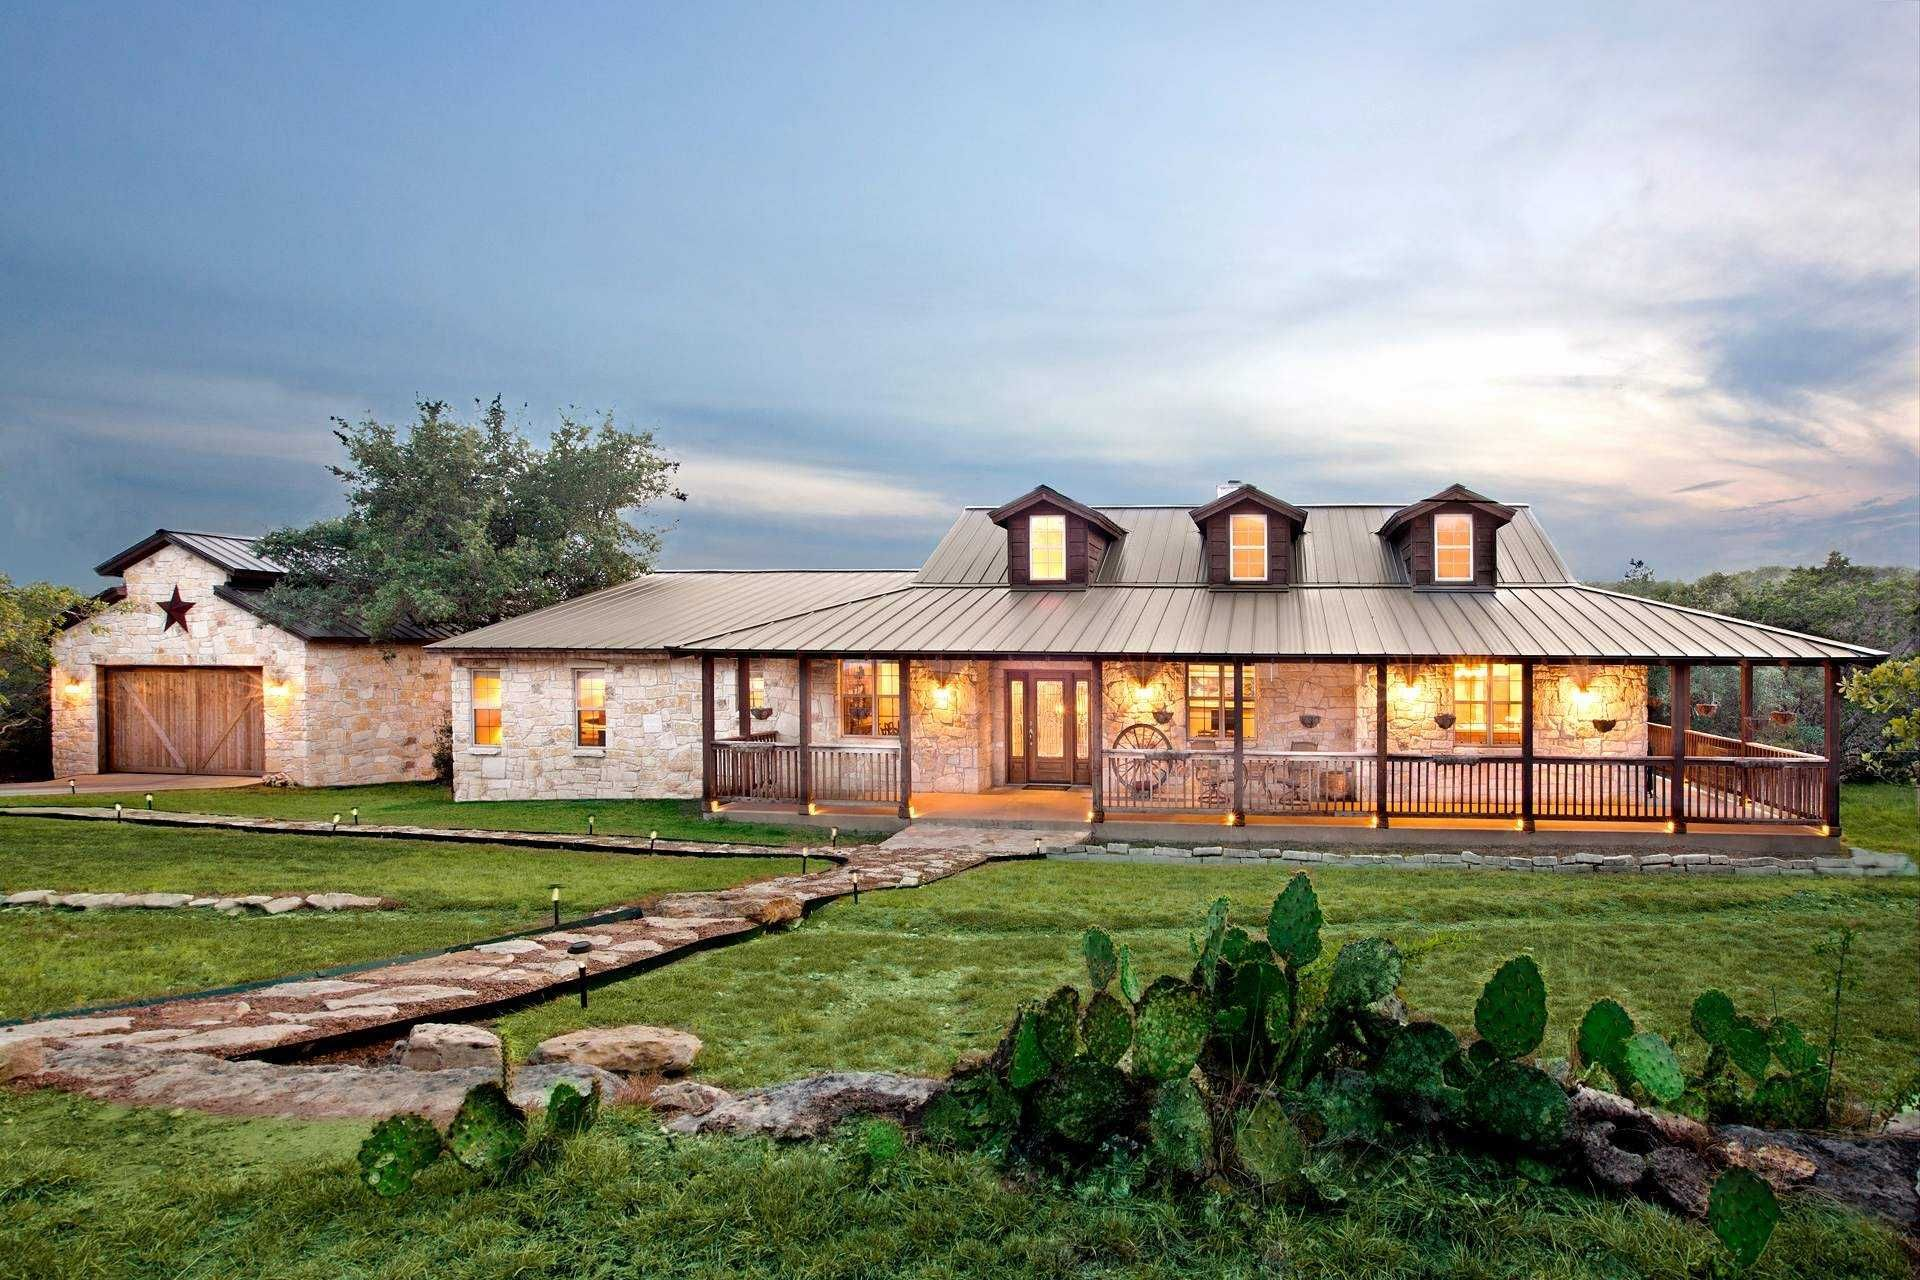 Simple Country Ranch Style House Lovely Simple Country Ranch Style House Texas Style House Plans Lo Ranch House Designs Ranch House Plans Ranch Style Homes